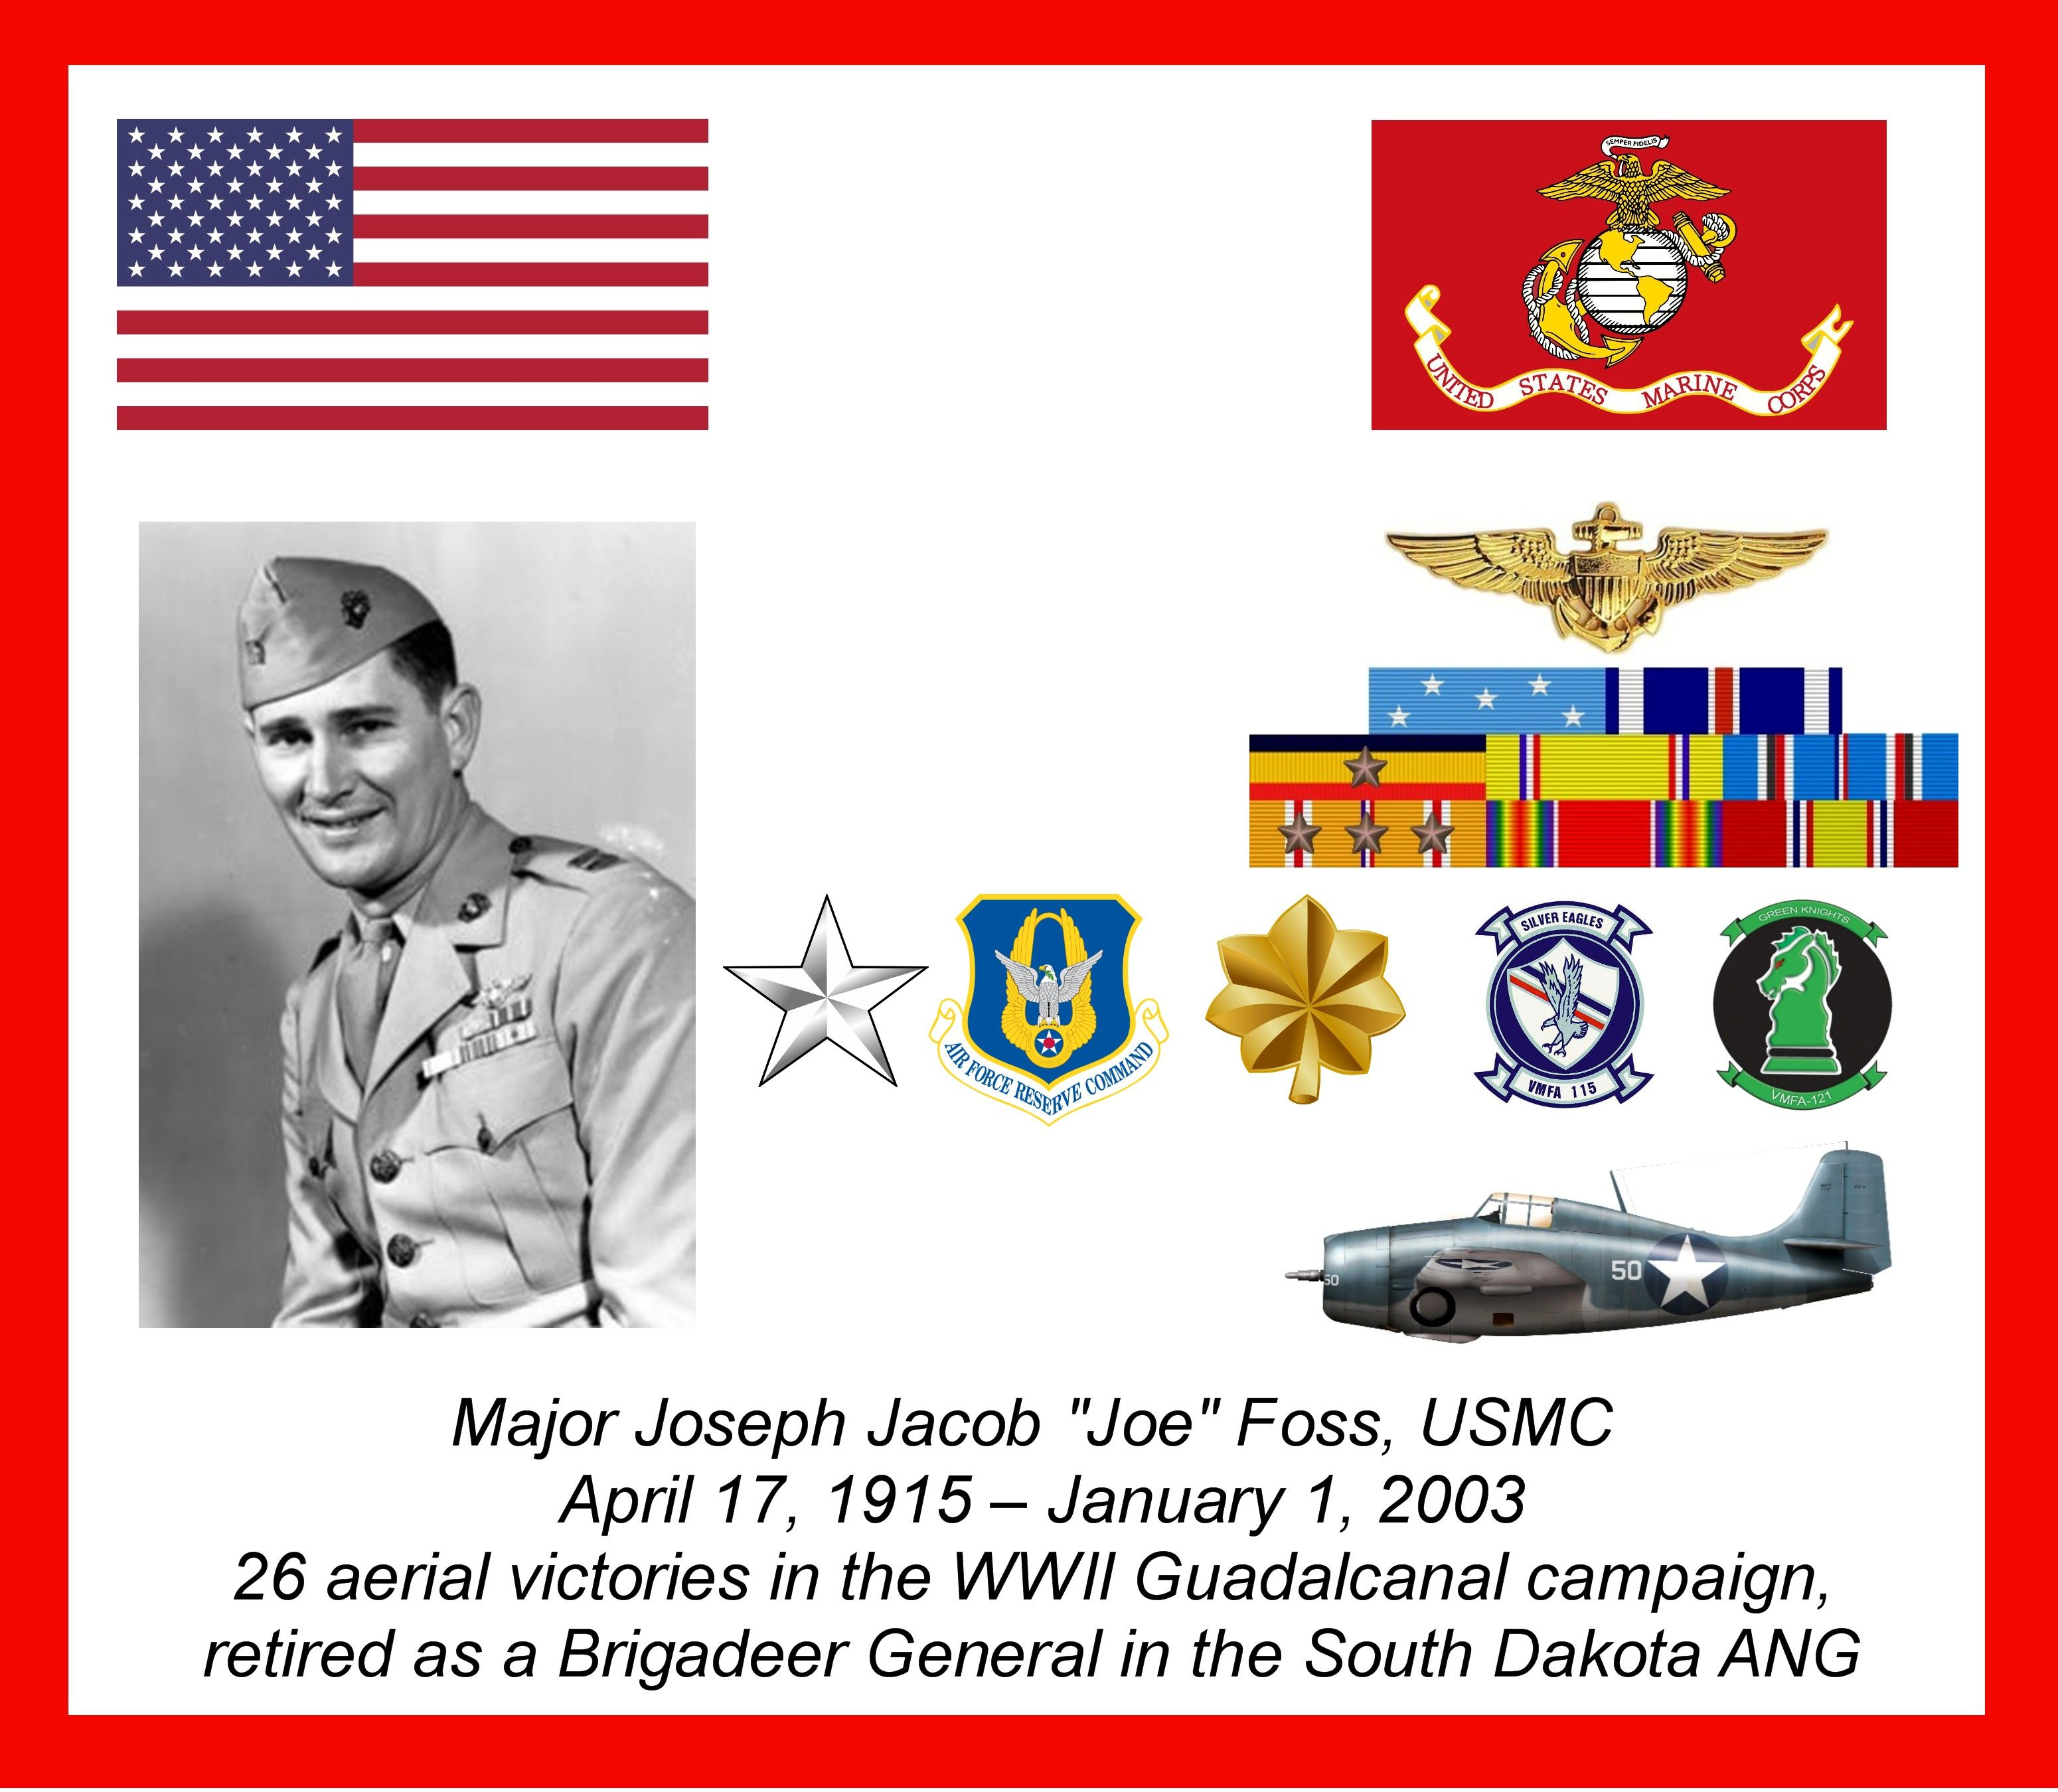 Major Joe Foss, USMC received the MOH for 26 aerial victories in Guadalcanal awarded by FDR.  After WWII he returned home to enter the South Dakota Air National Guard.  He created a 35 plane air service, owned a Packard auto dealership and became the 1st Commissioner of the American Football League.